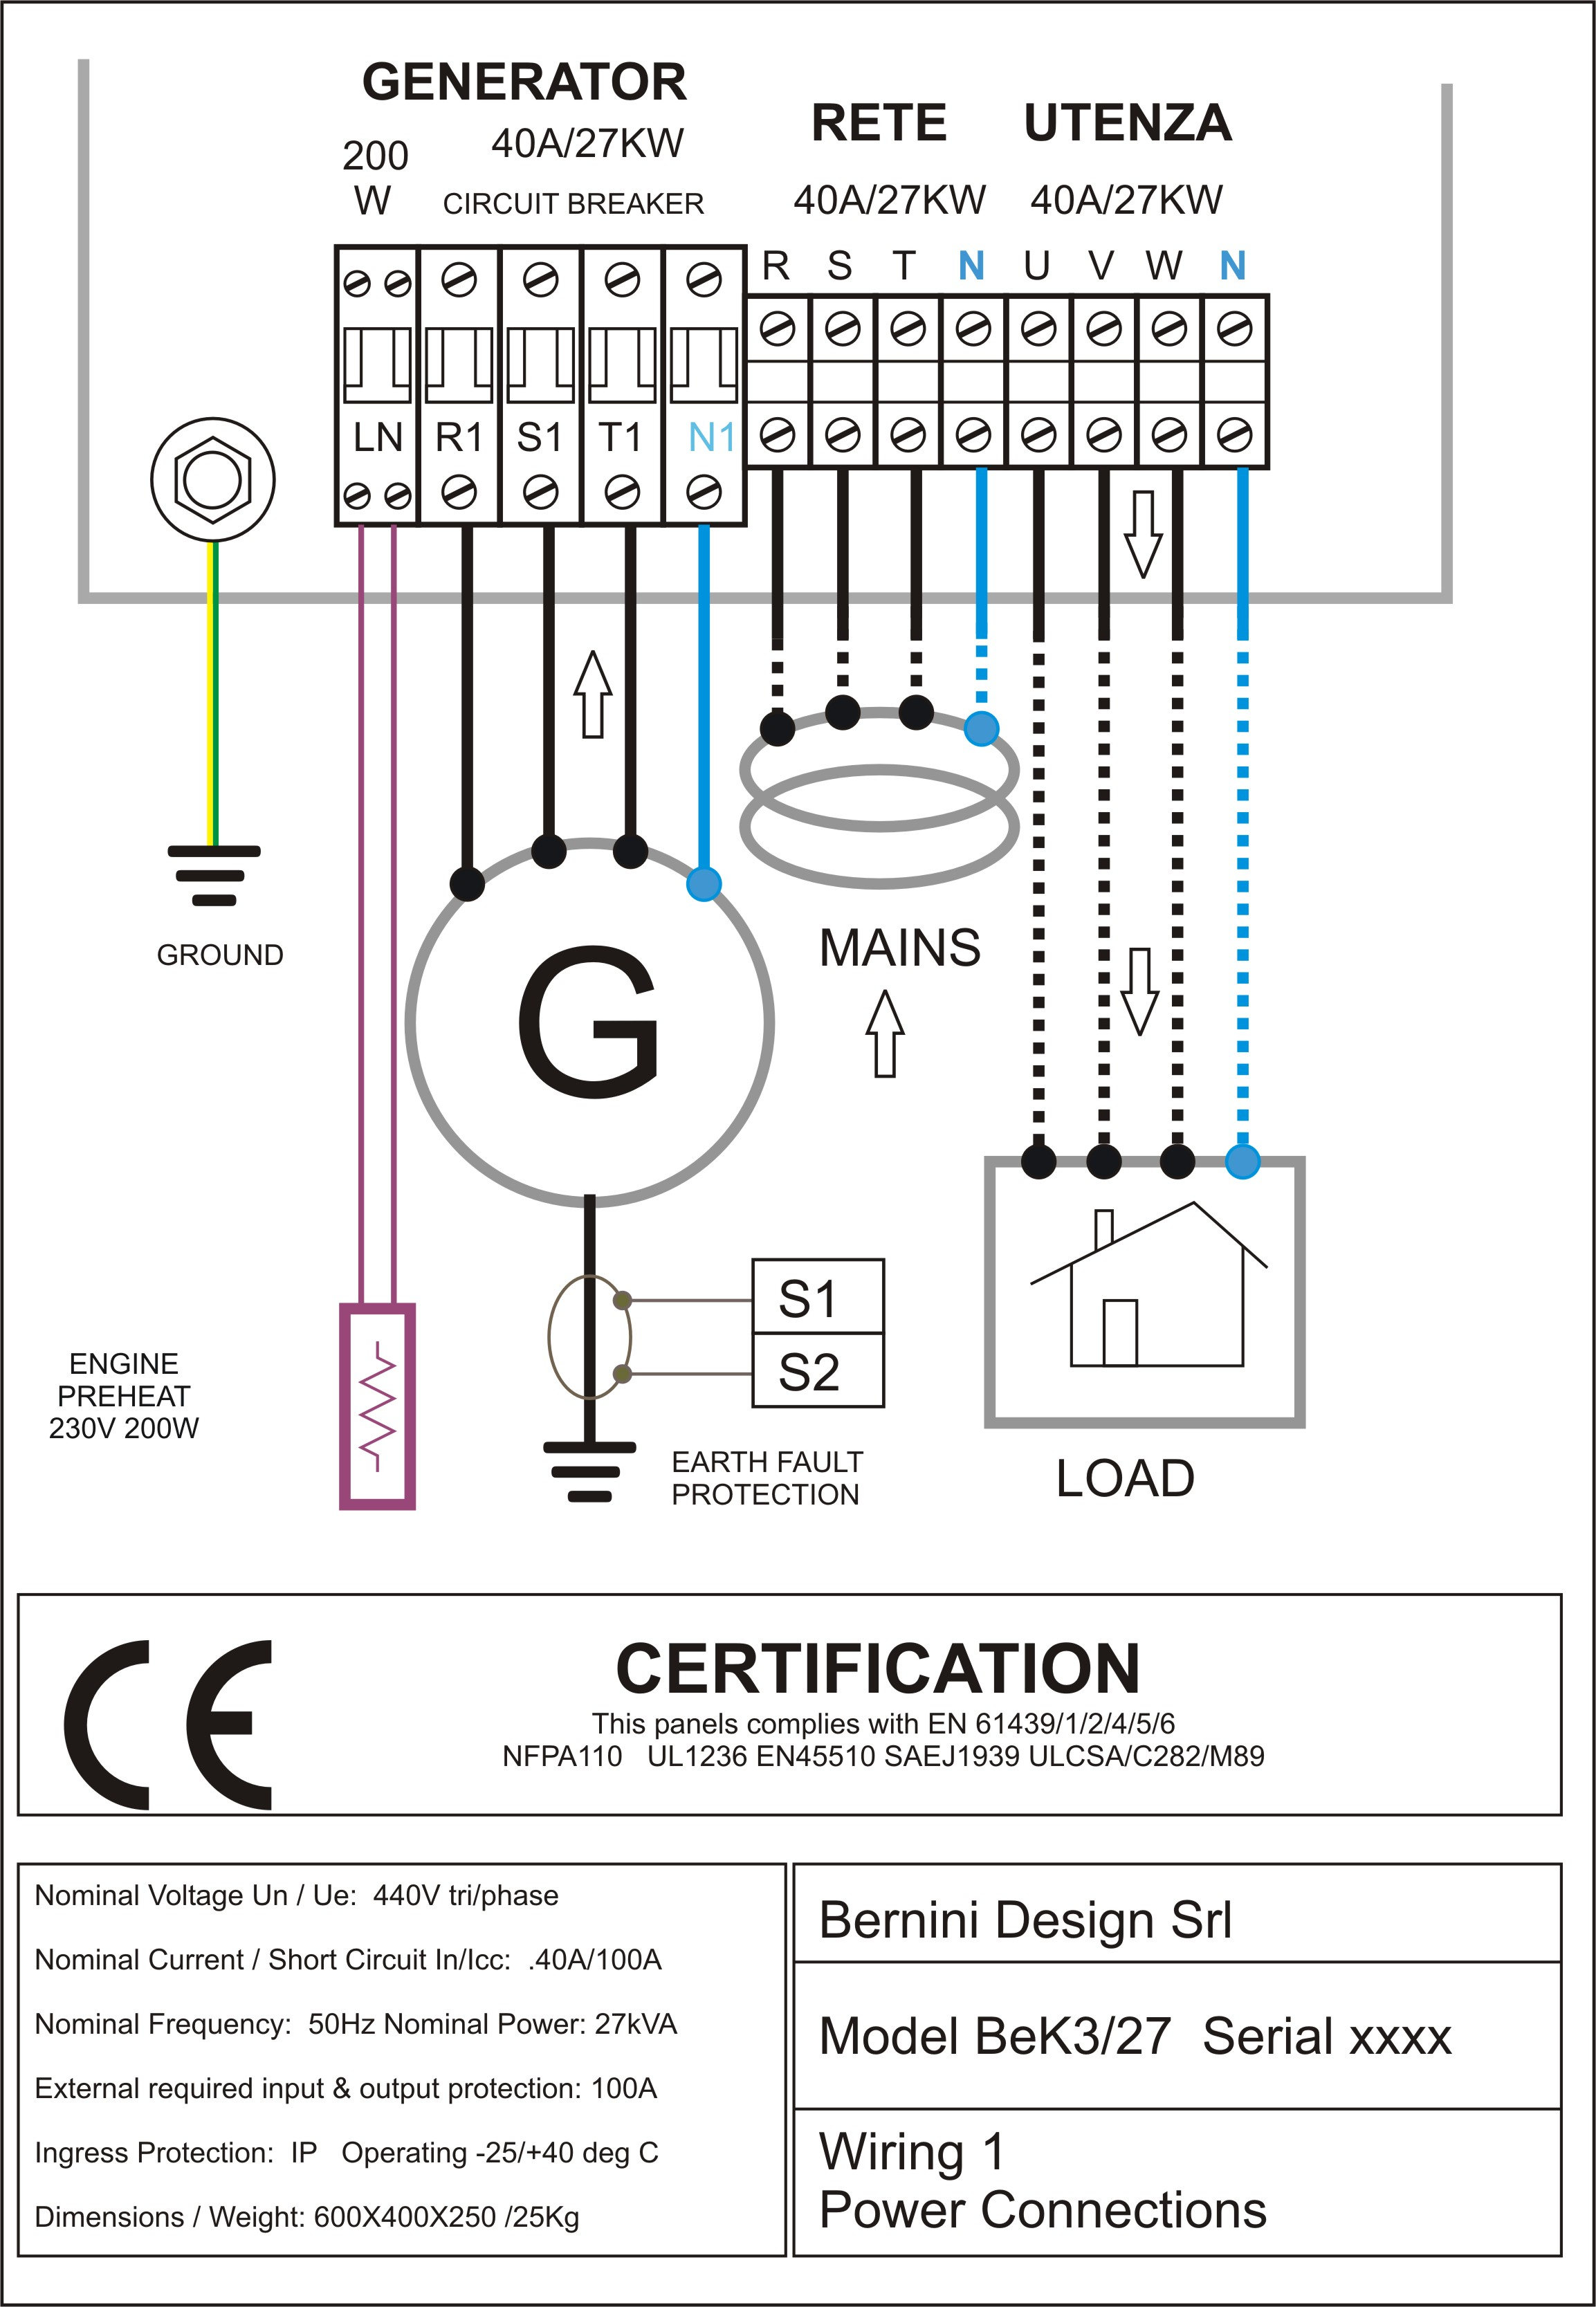 diesel generator control panel wiring diagram – genset controller,Block diagram,Block Diagram Of Diesel Generator